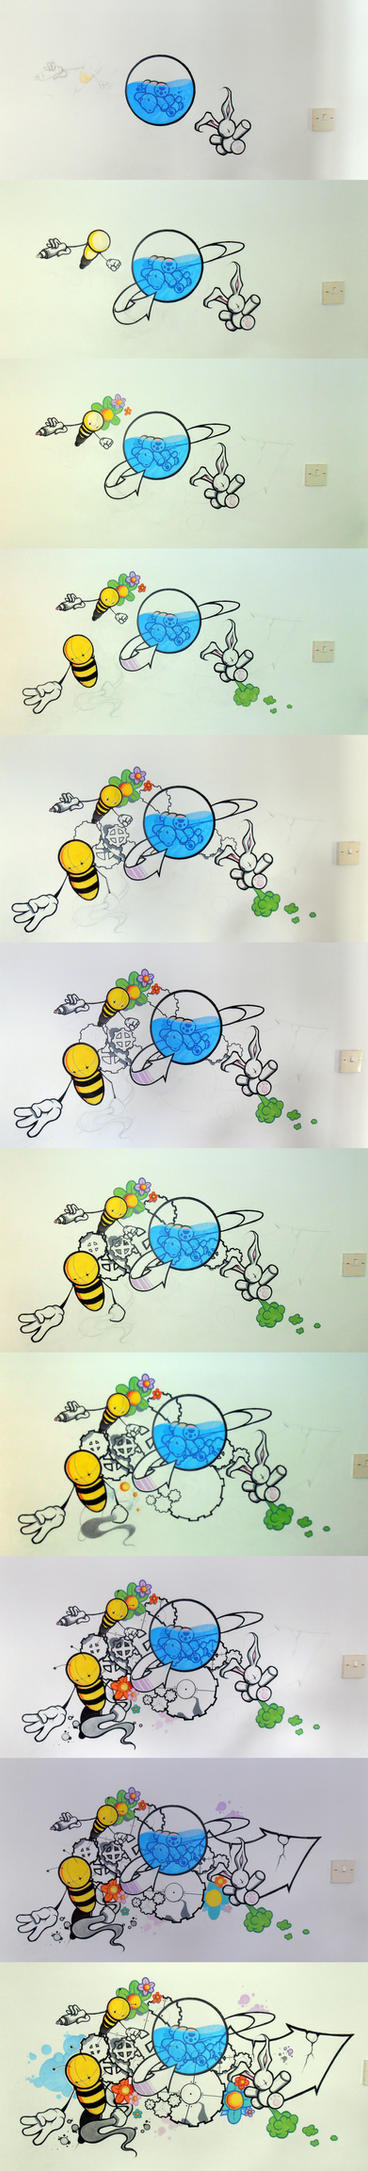 Marker Mural Tutorial by EUKEE